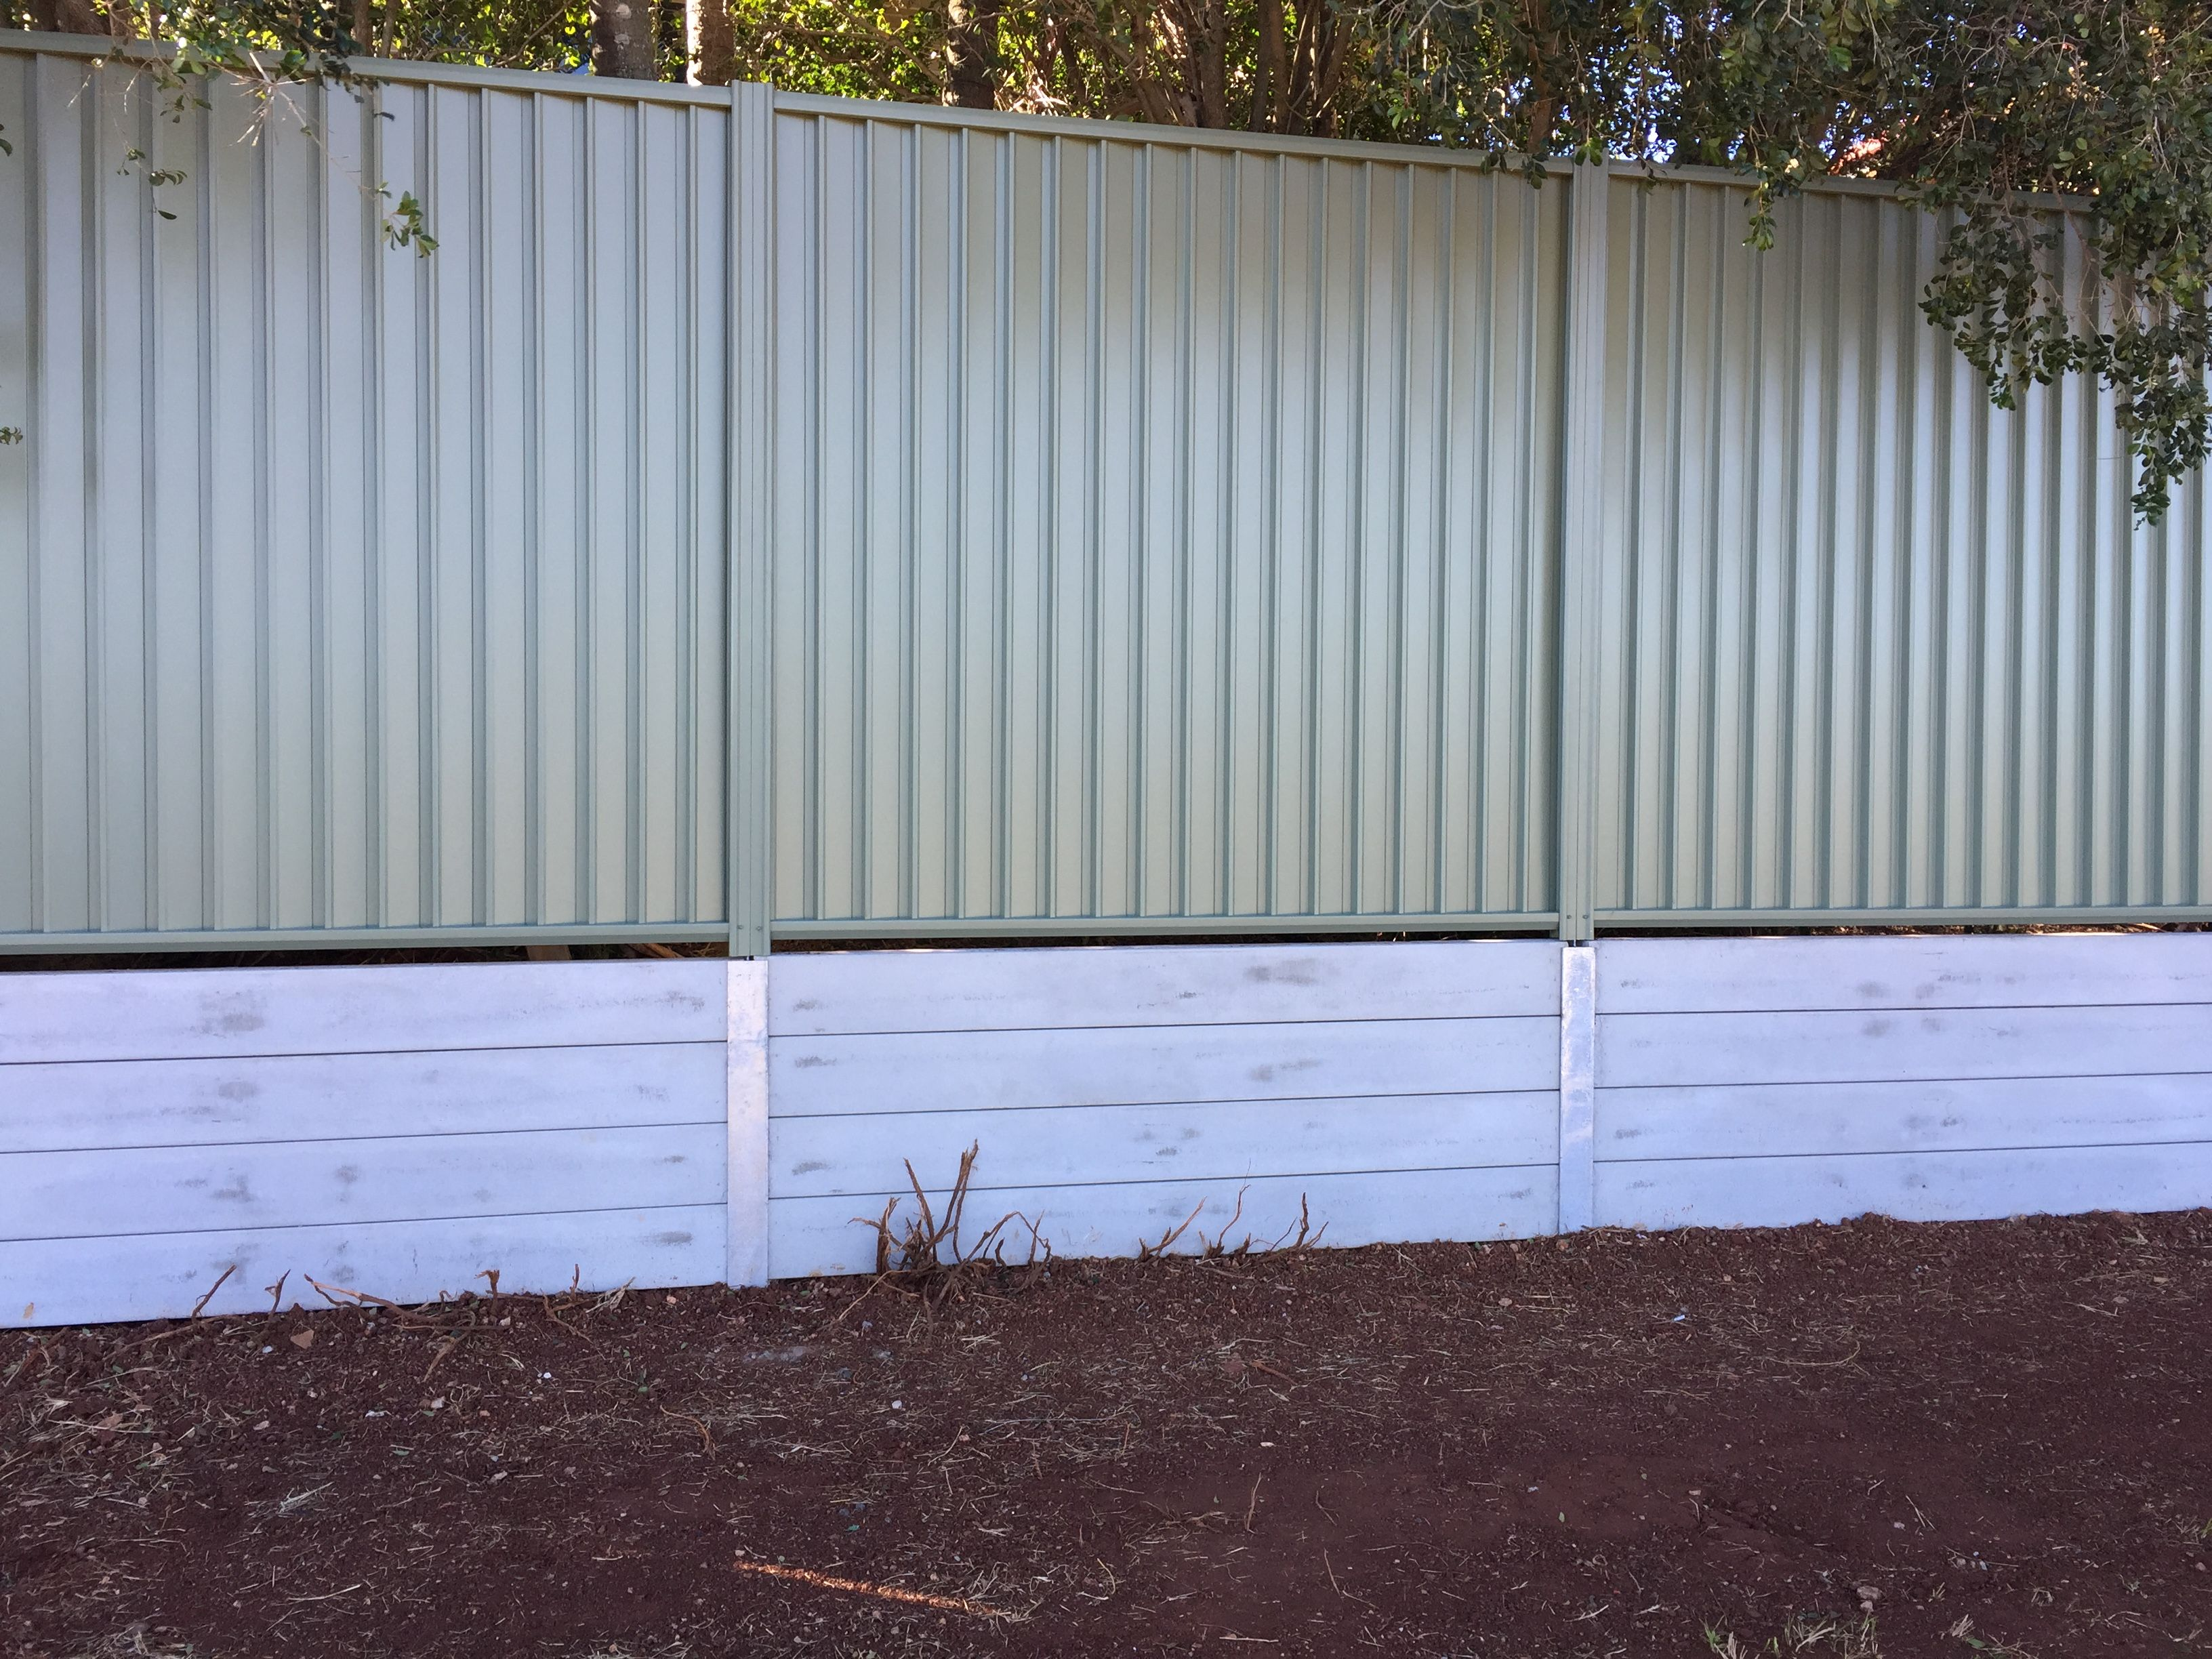 Recently Completed Northbond Colourbond Fencing And Concrete Sleeper Retaining Wall Concrete Sleeper Retaining Walls Concrete Sleepers Concrete Retaining Walls